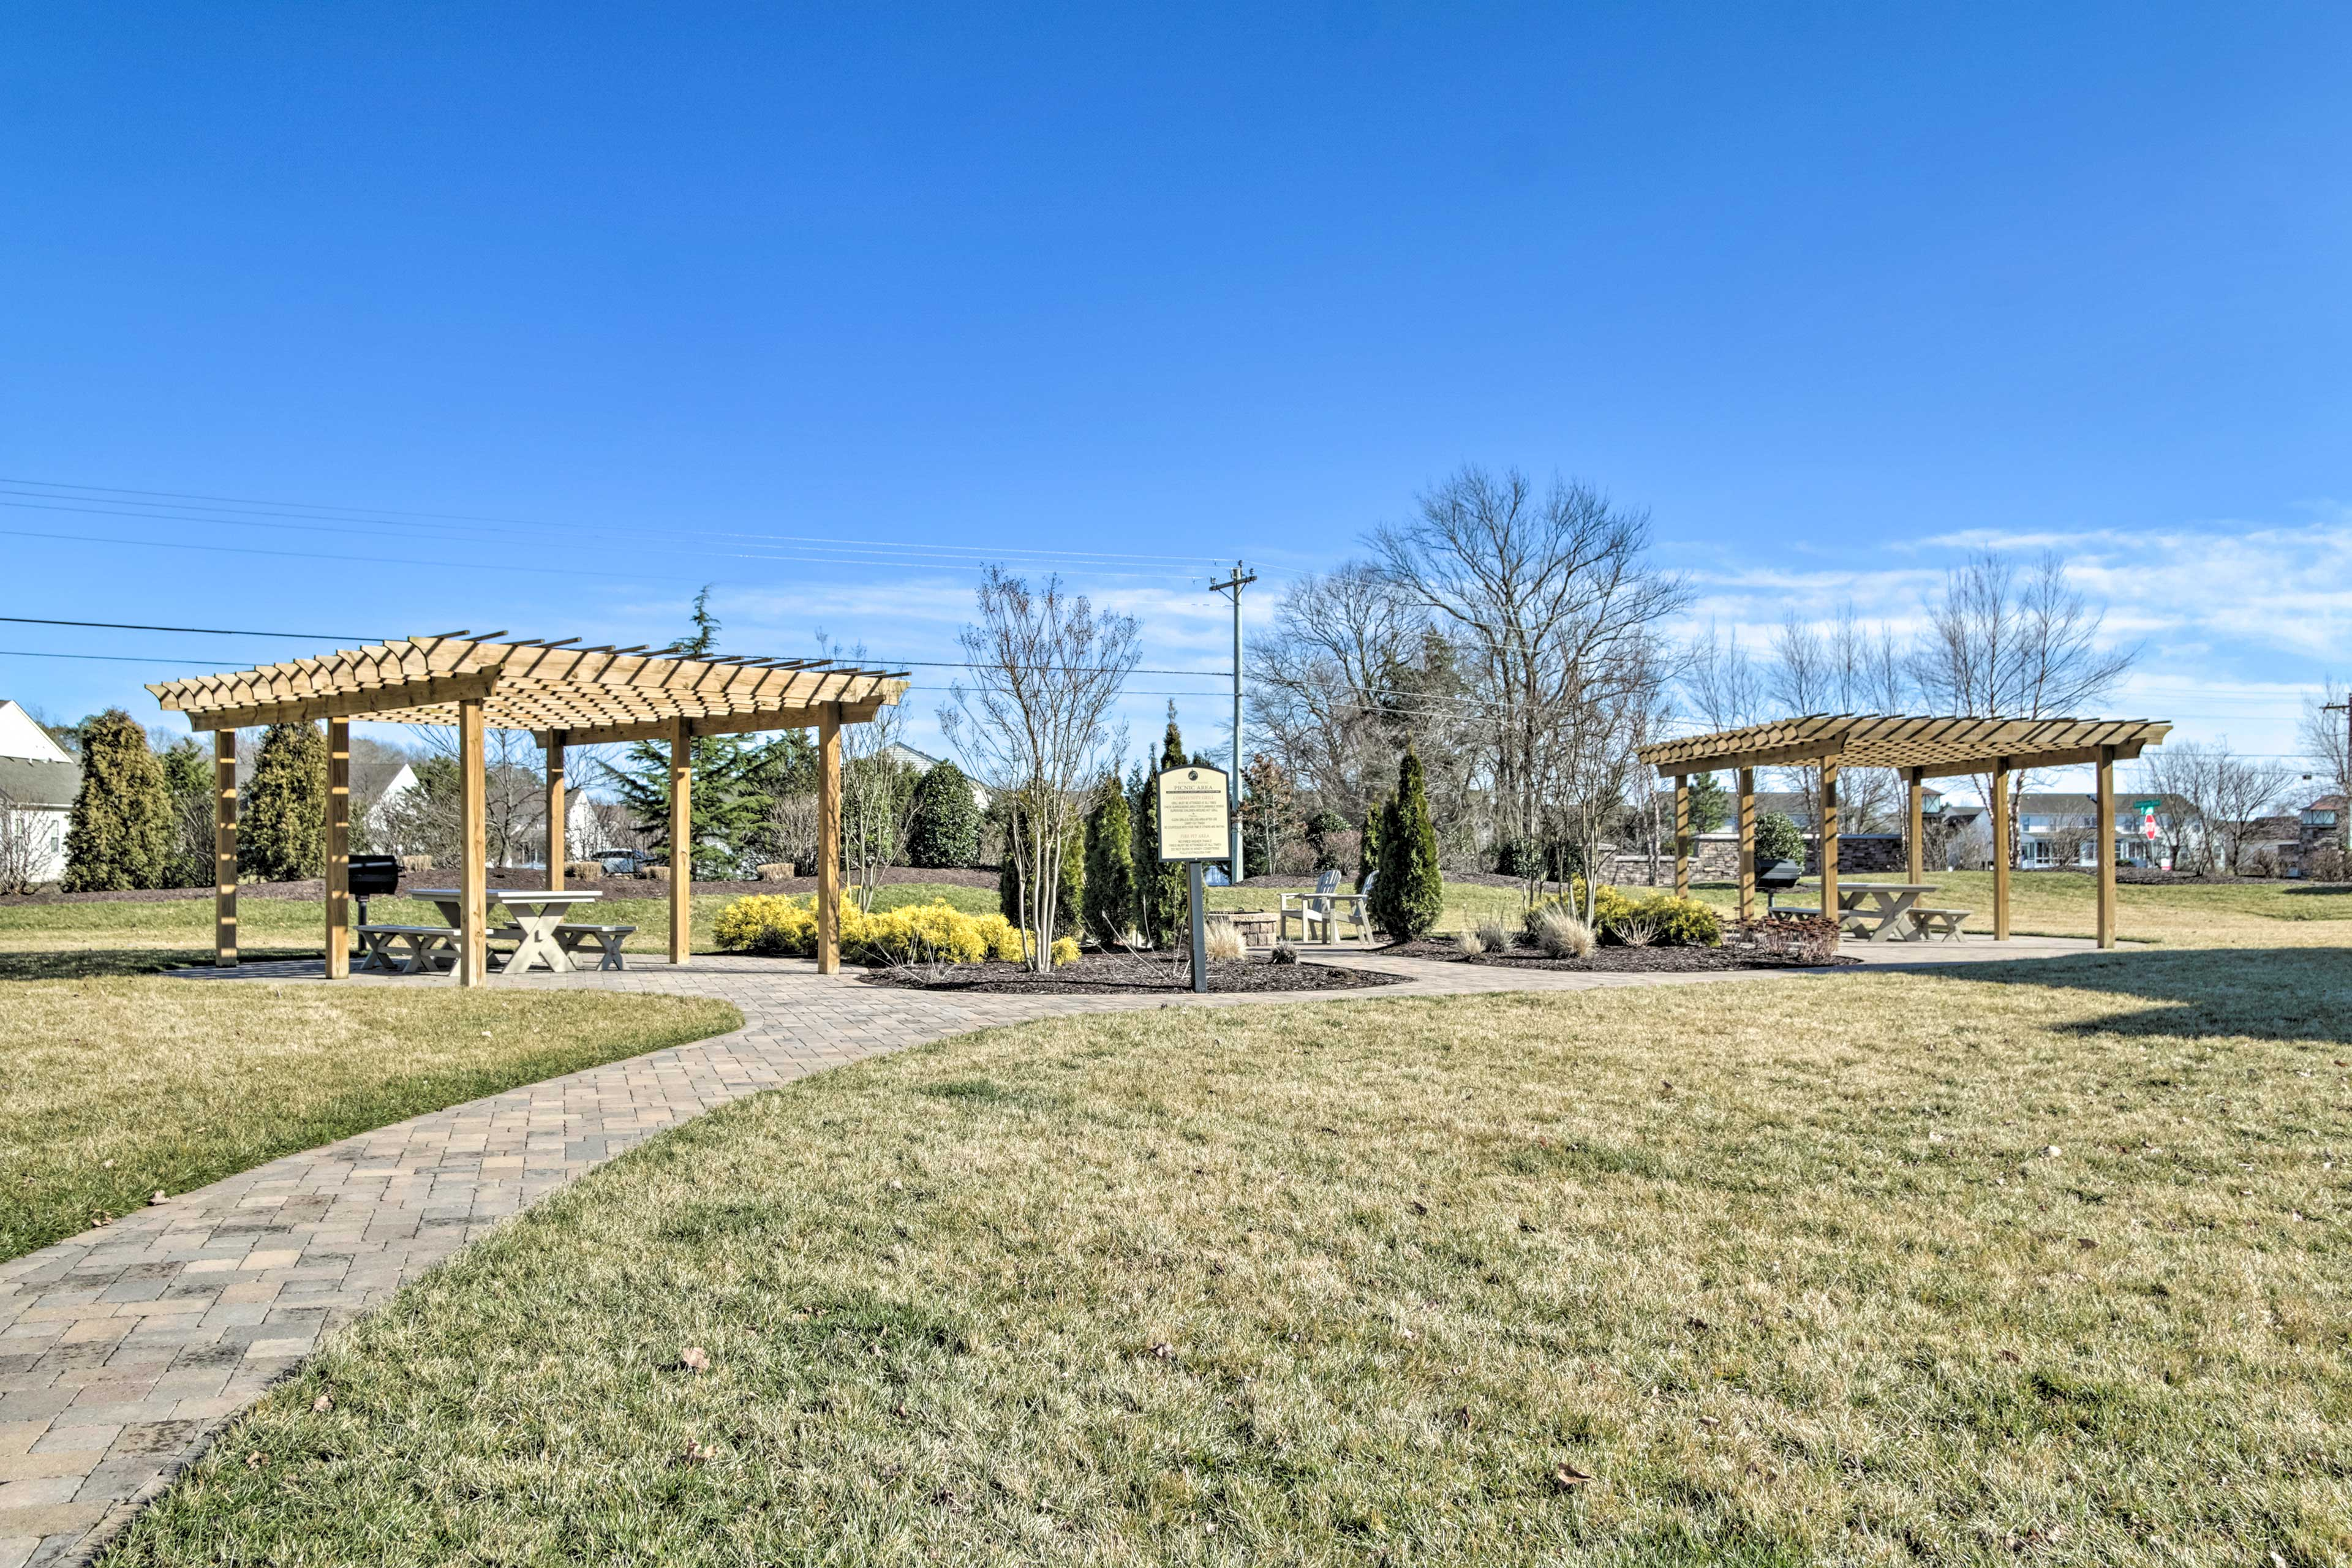 The community has several amenities, including picnic pergolas and grills.